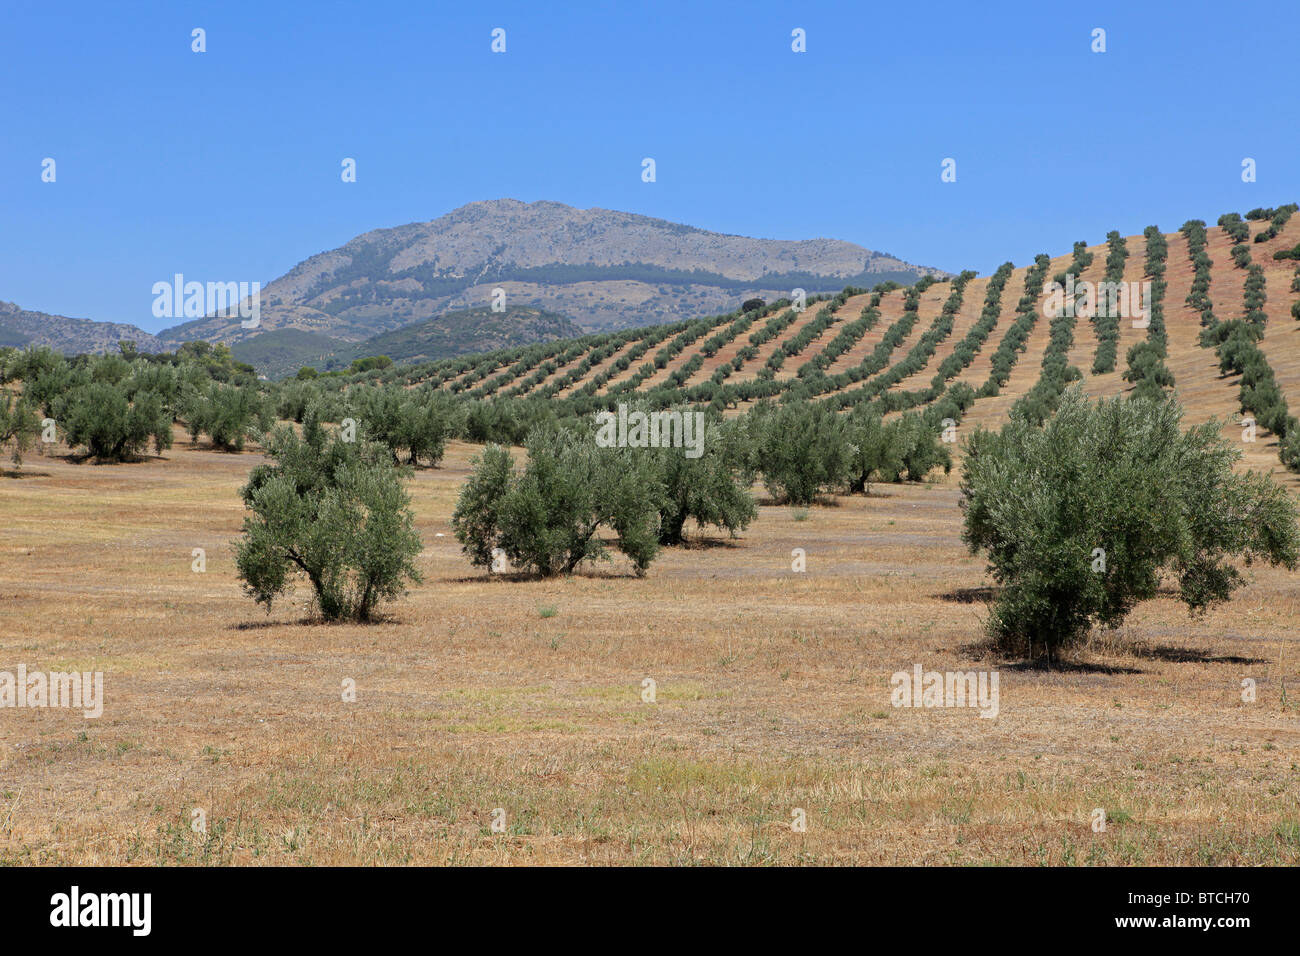 Olives groves in Andalusia, Spain - Stock Image